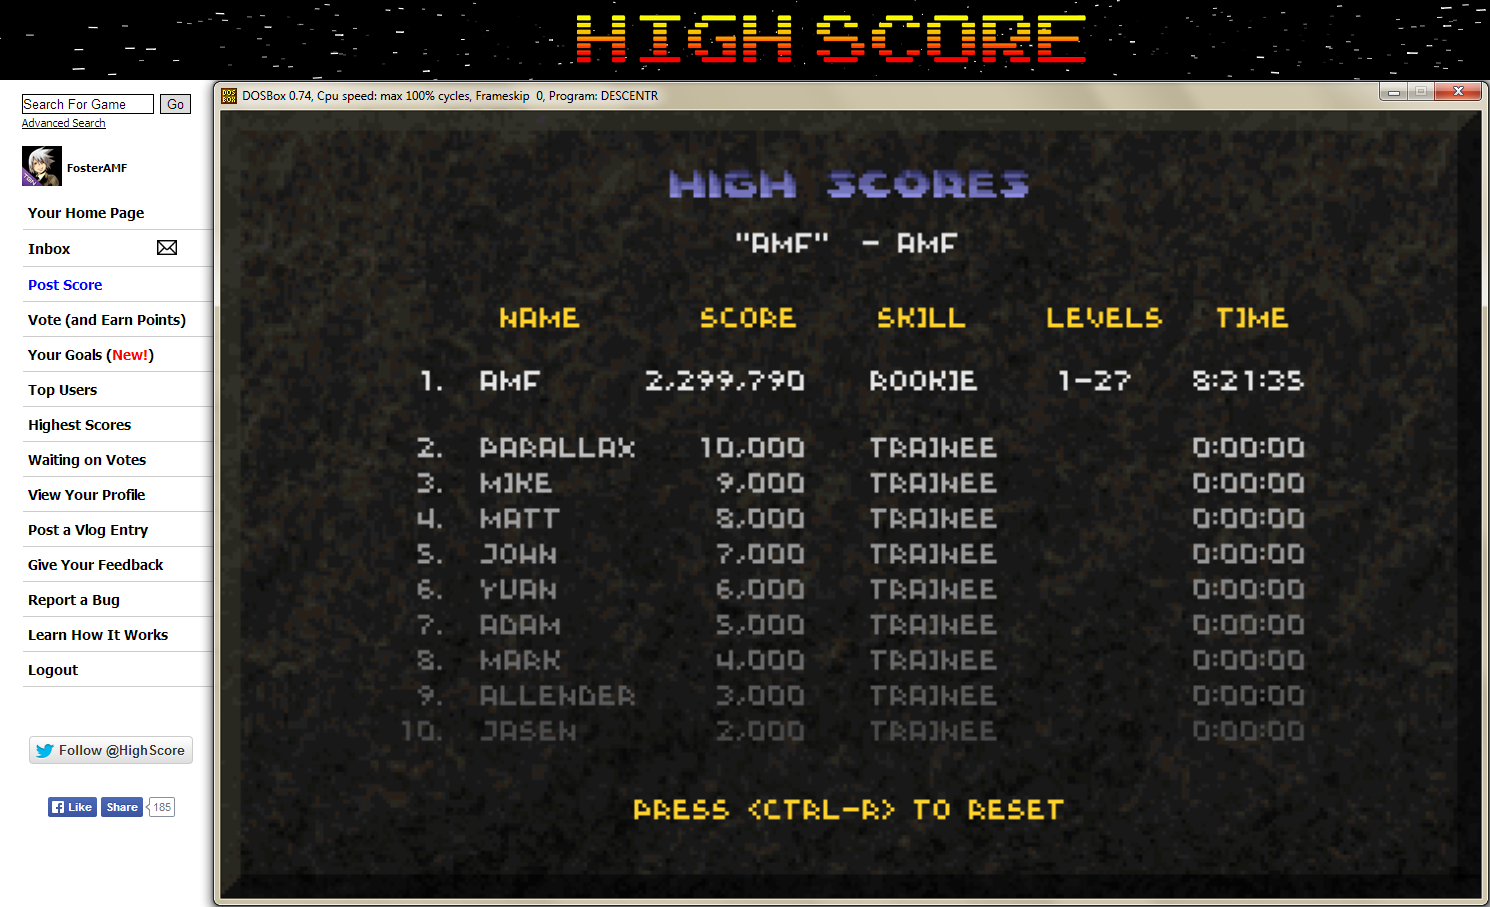 FosterAMF: Descent: Total Score [Rookie] (PC Emulated / DOSBox) 2,299,790 points on 2014-05-07 00:08:54